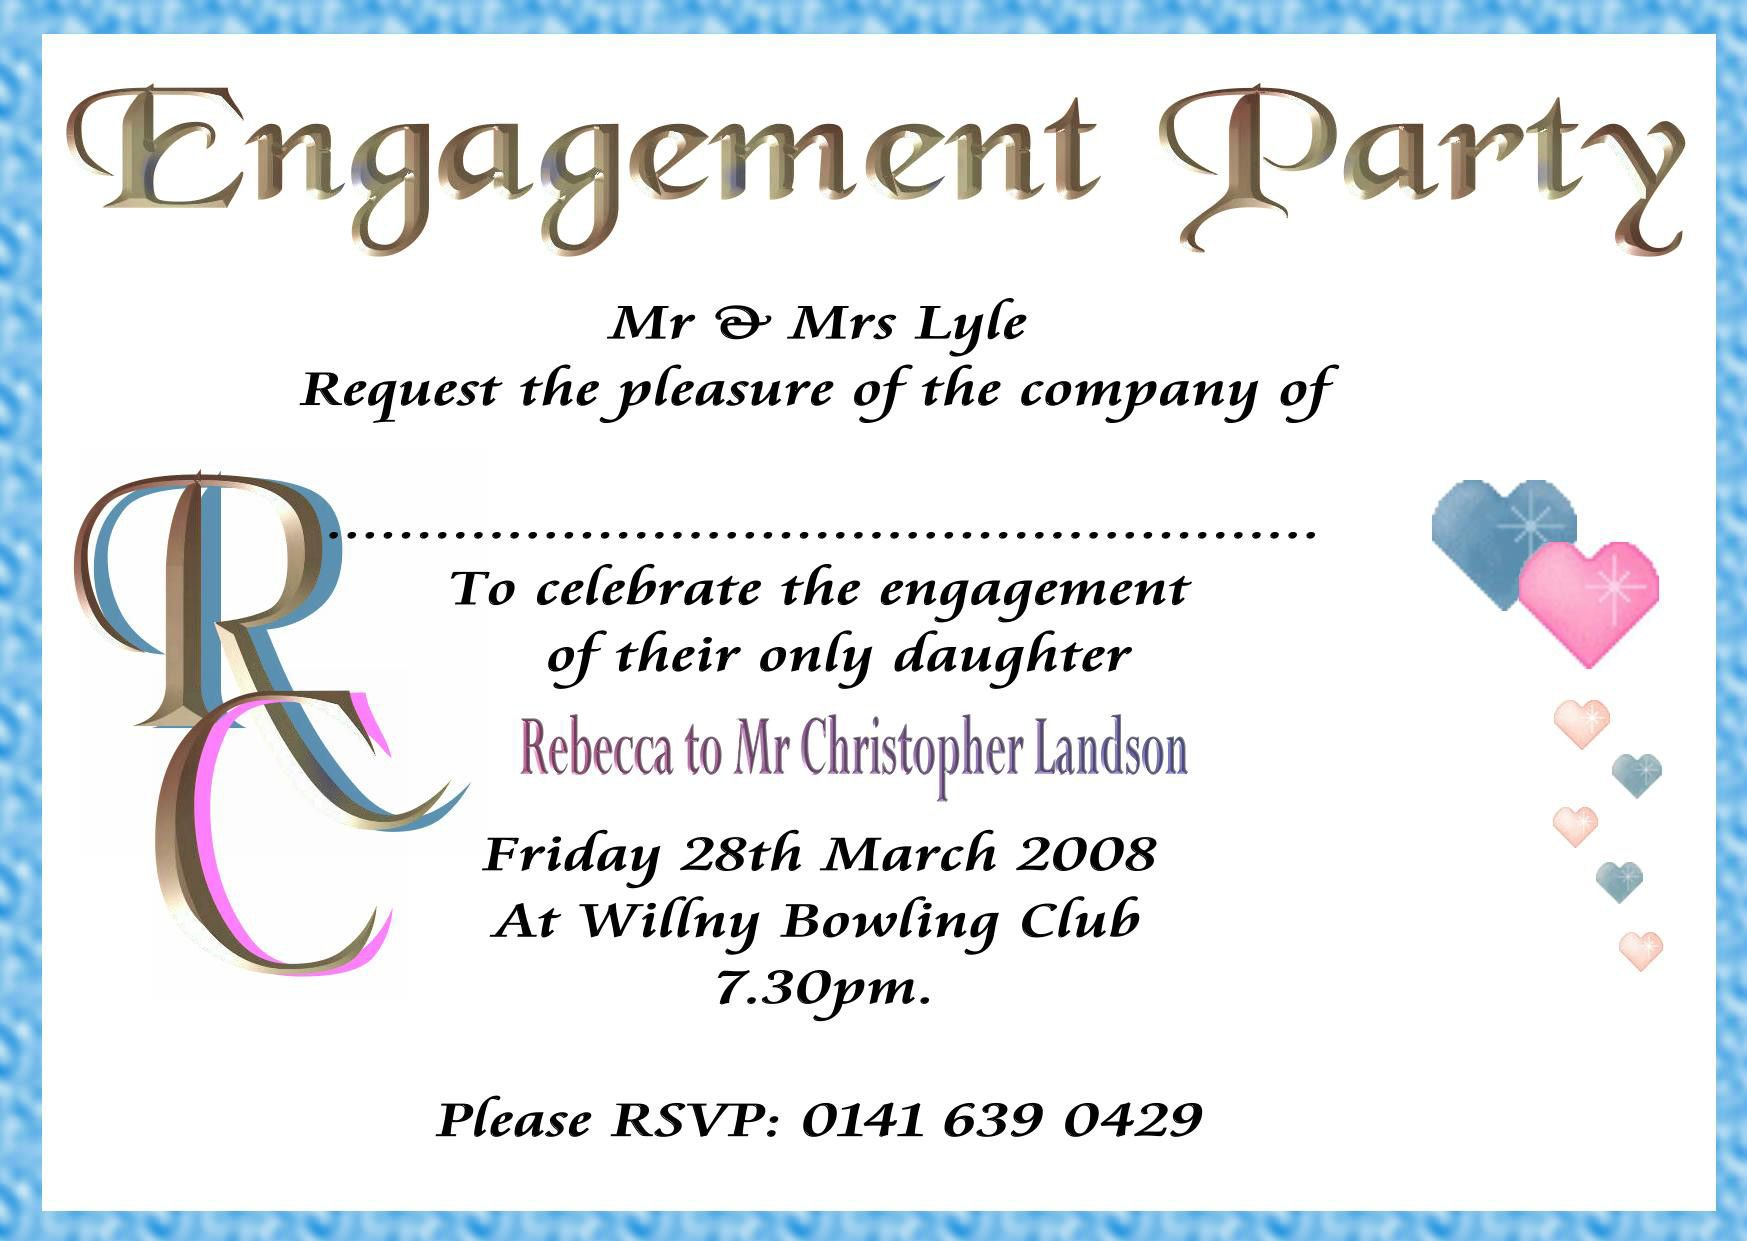 Engagement Party Invitation Template Invitation Templates Invitation  Templates Butterfly Invitation Templates Dinner Invitation Posts Related To  Free ...  Dinner Invitation Templates Free